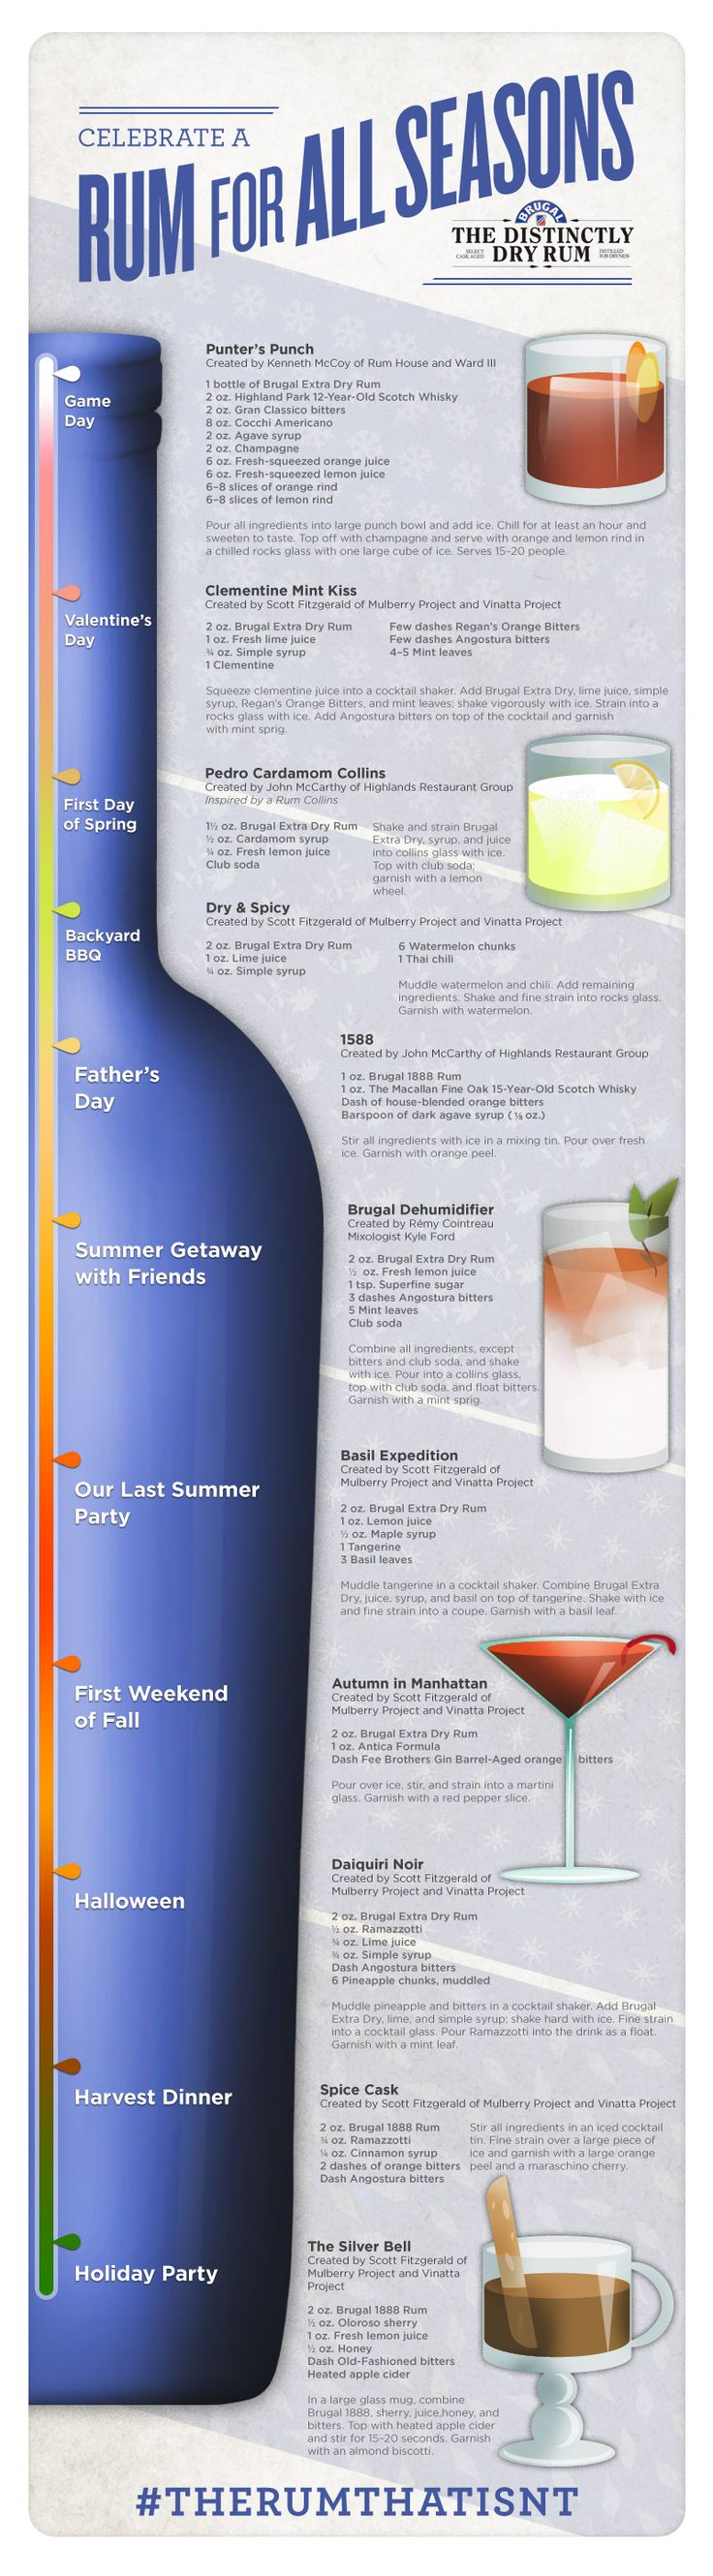 Learn how to make a @BrugalRumUSA cocktail for all seasons with this nifty infographic. #client